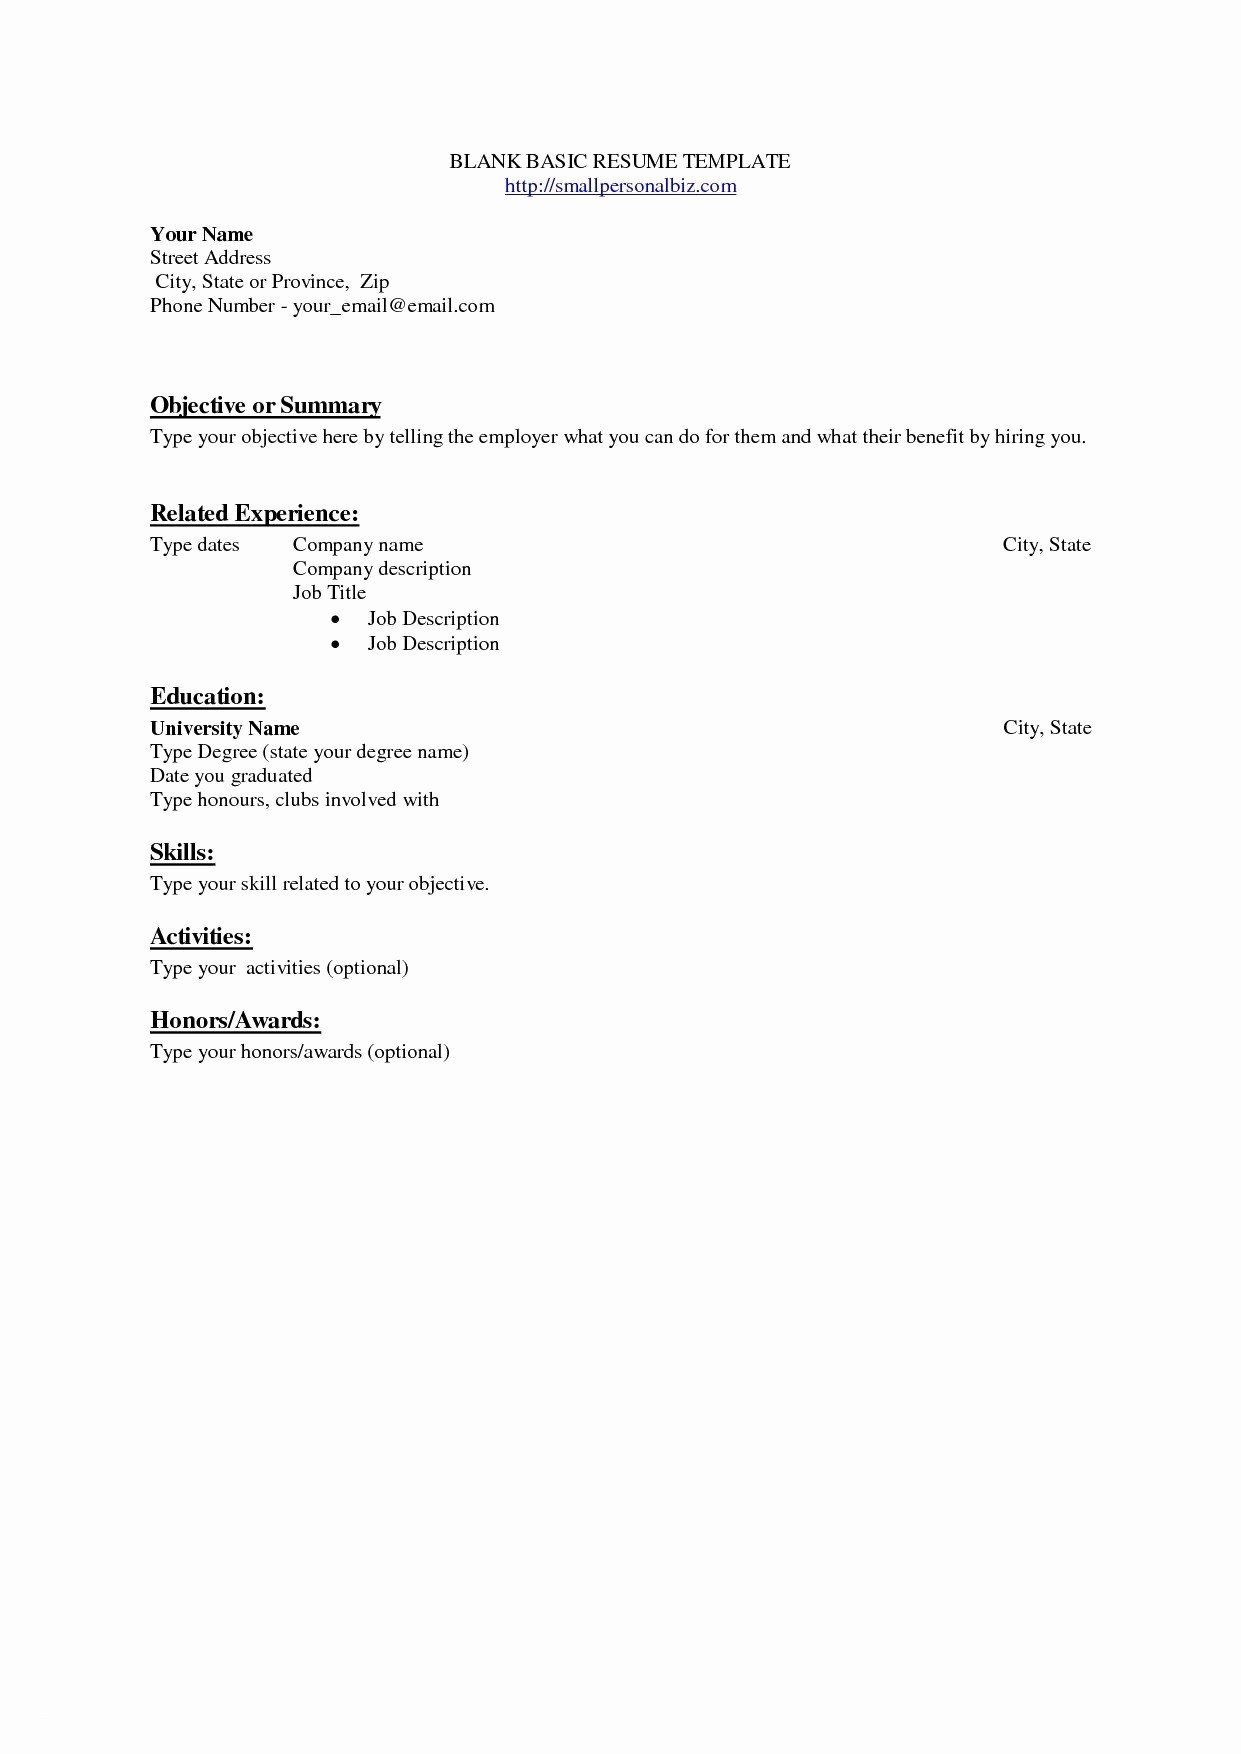 Free Employment Reference Letter Template - Help Making A Resume Beautiful Reference How to Make A Basic Resume